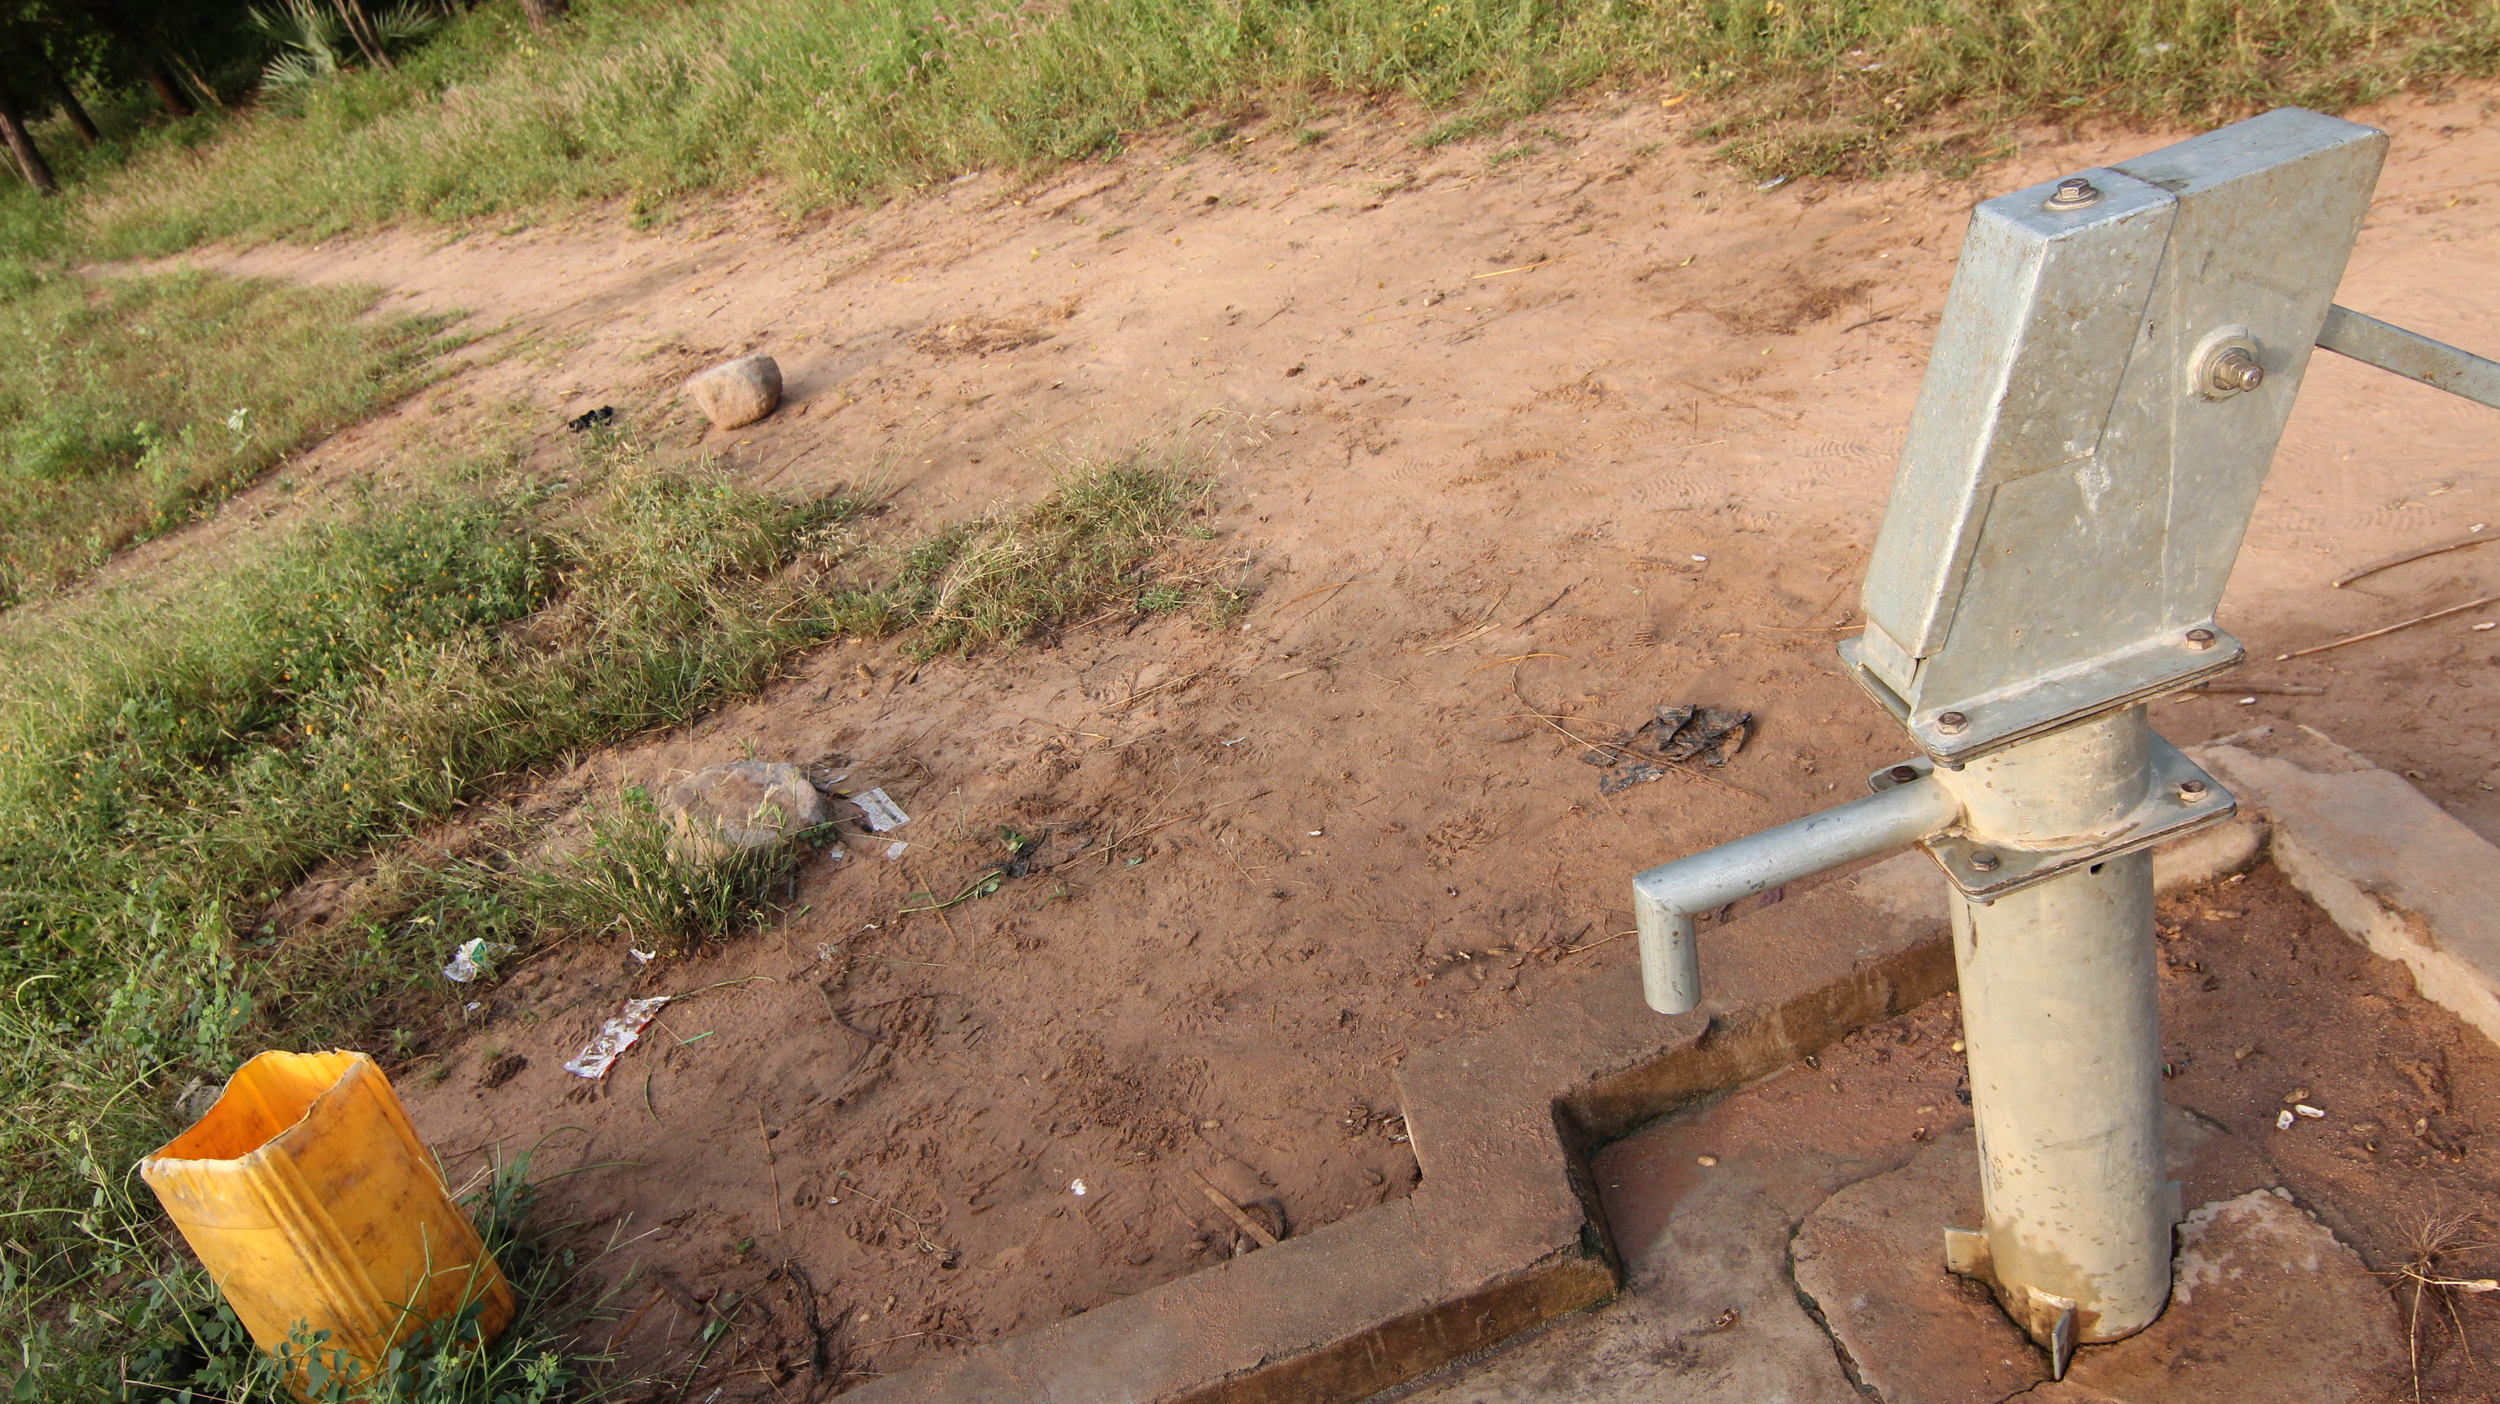 Student's first choice for water is at one of the hand-pump wells that are on-campus.